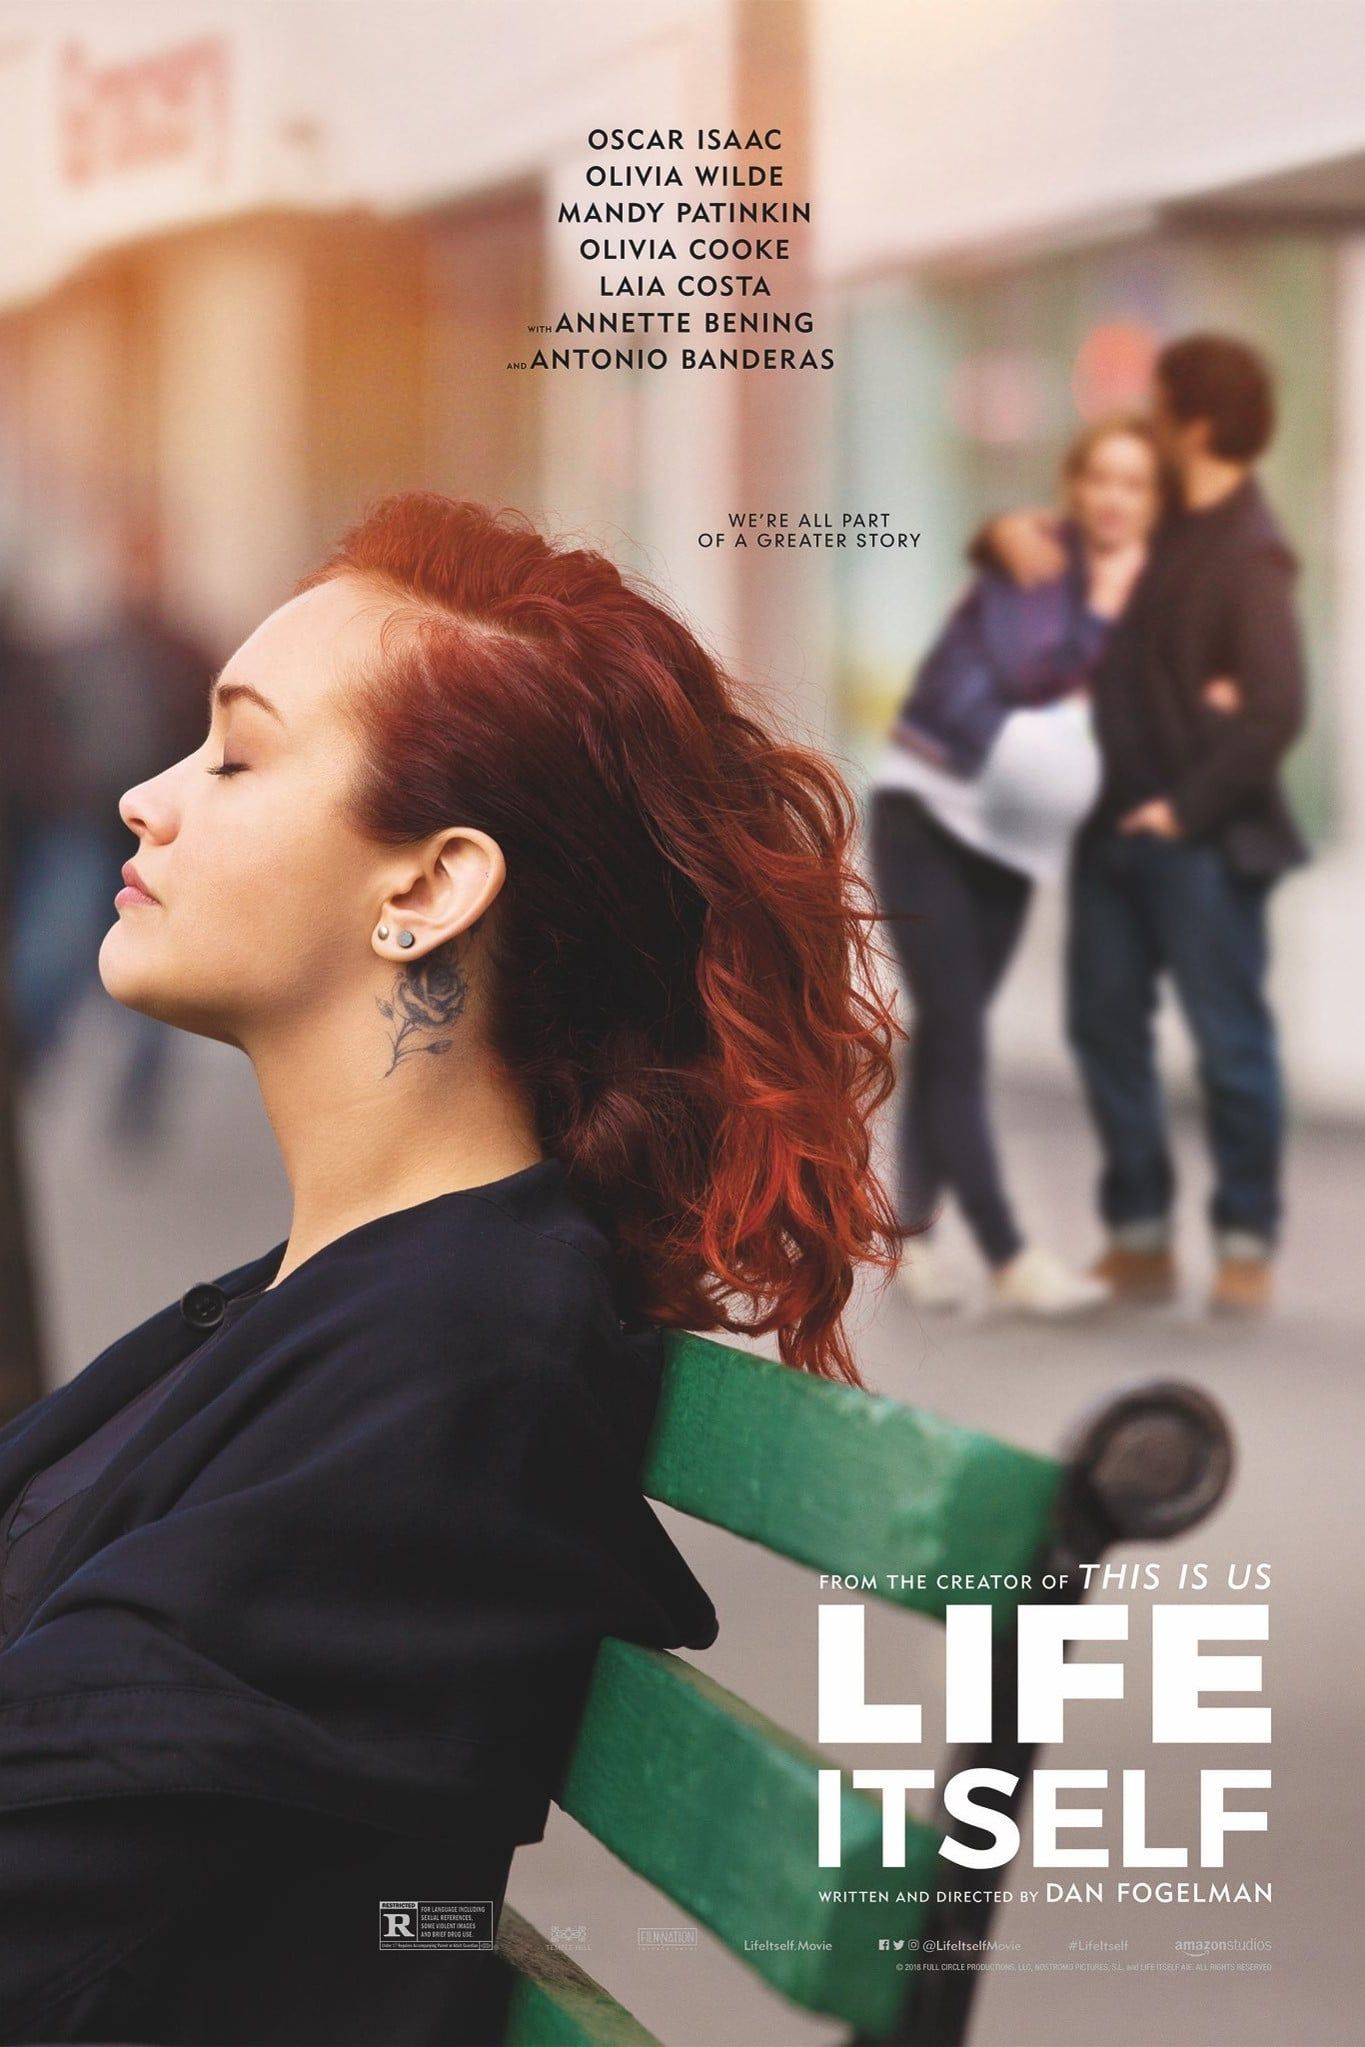 Life Itself (2018) Hindi Dubbed DVDRip DVDscr HD Avi Movie